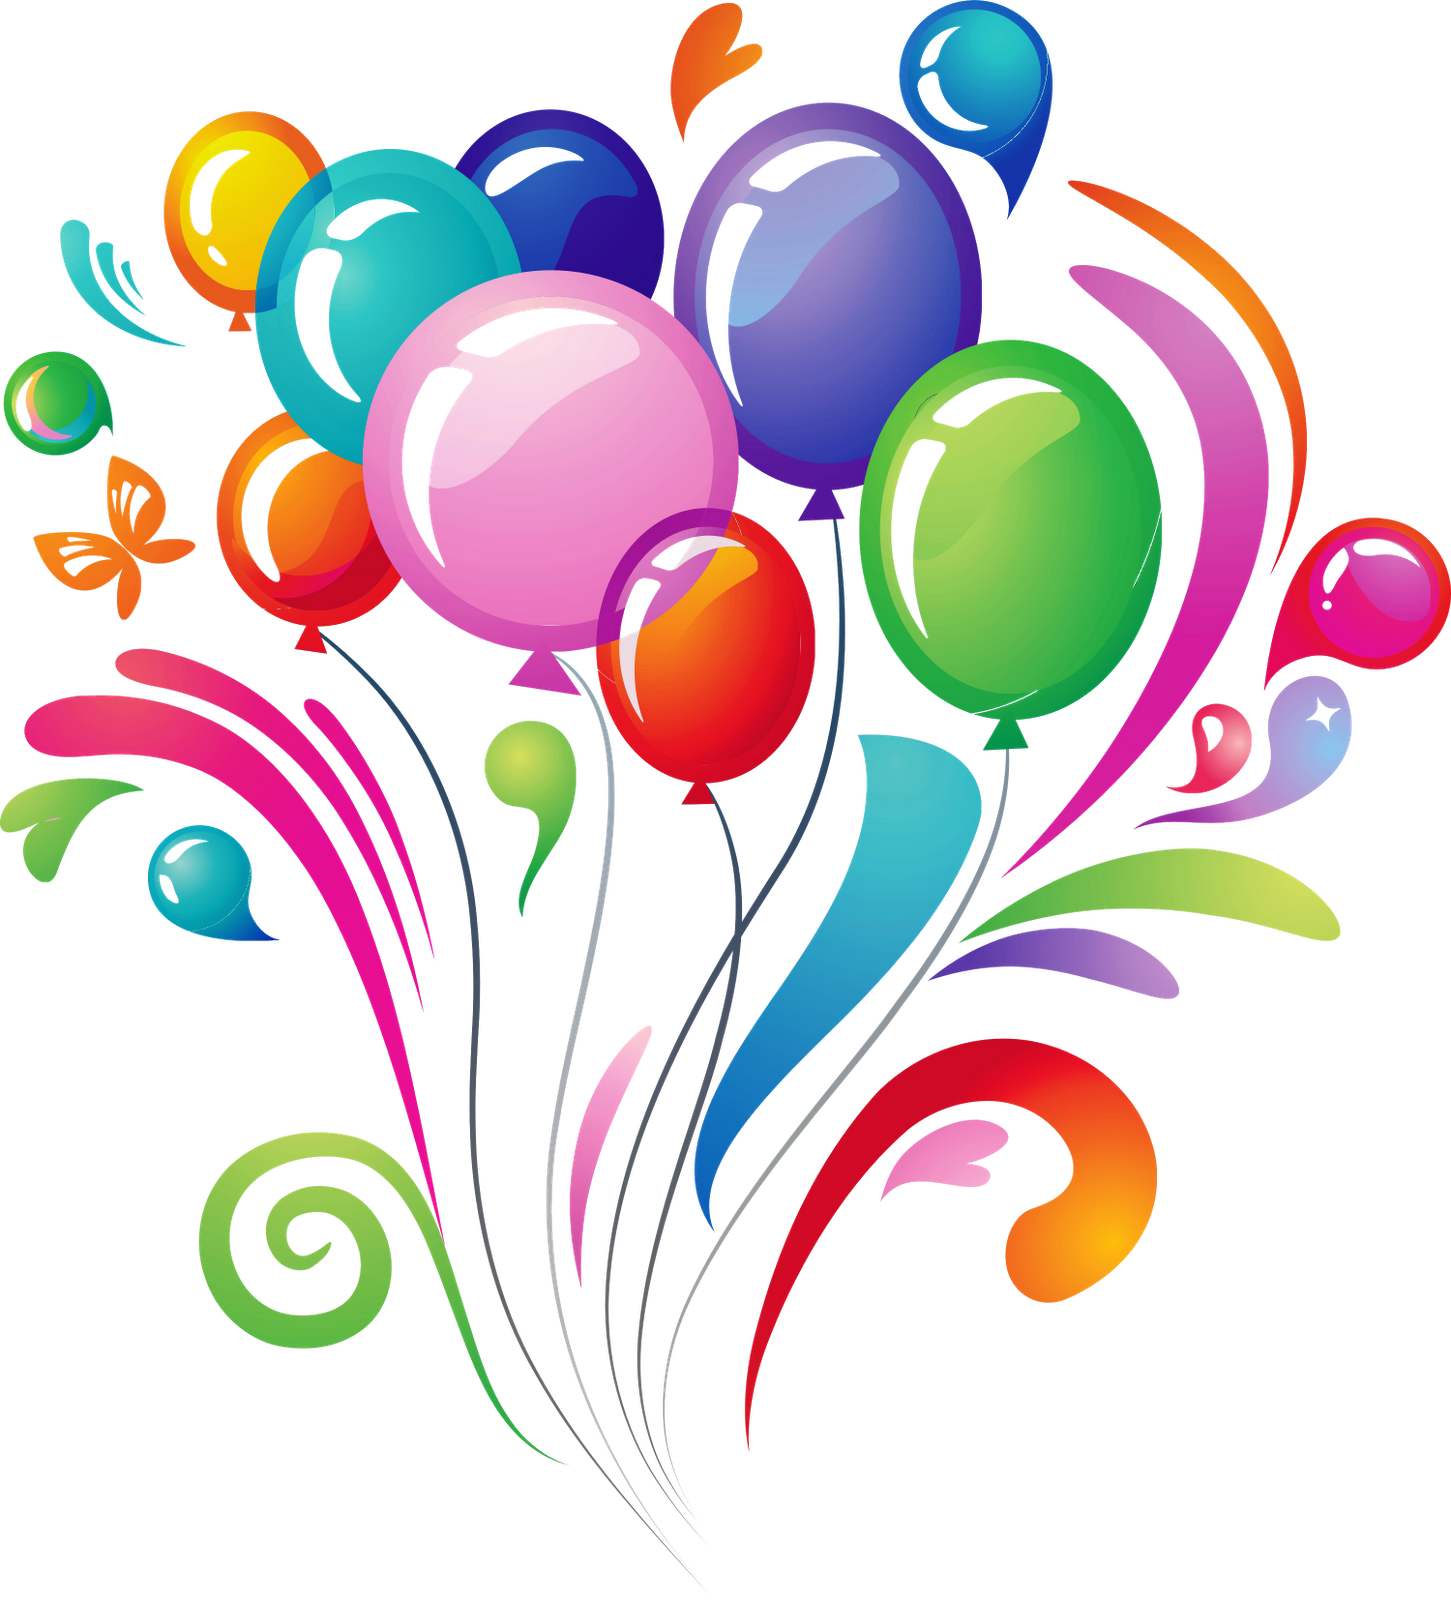 Happy birthday background png. Images transparent free download